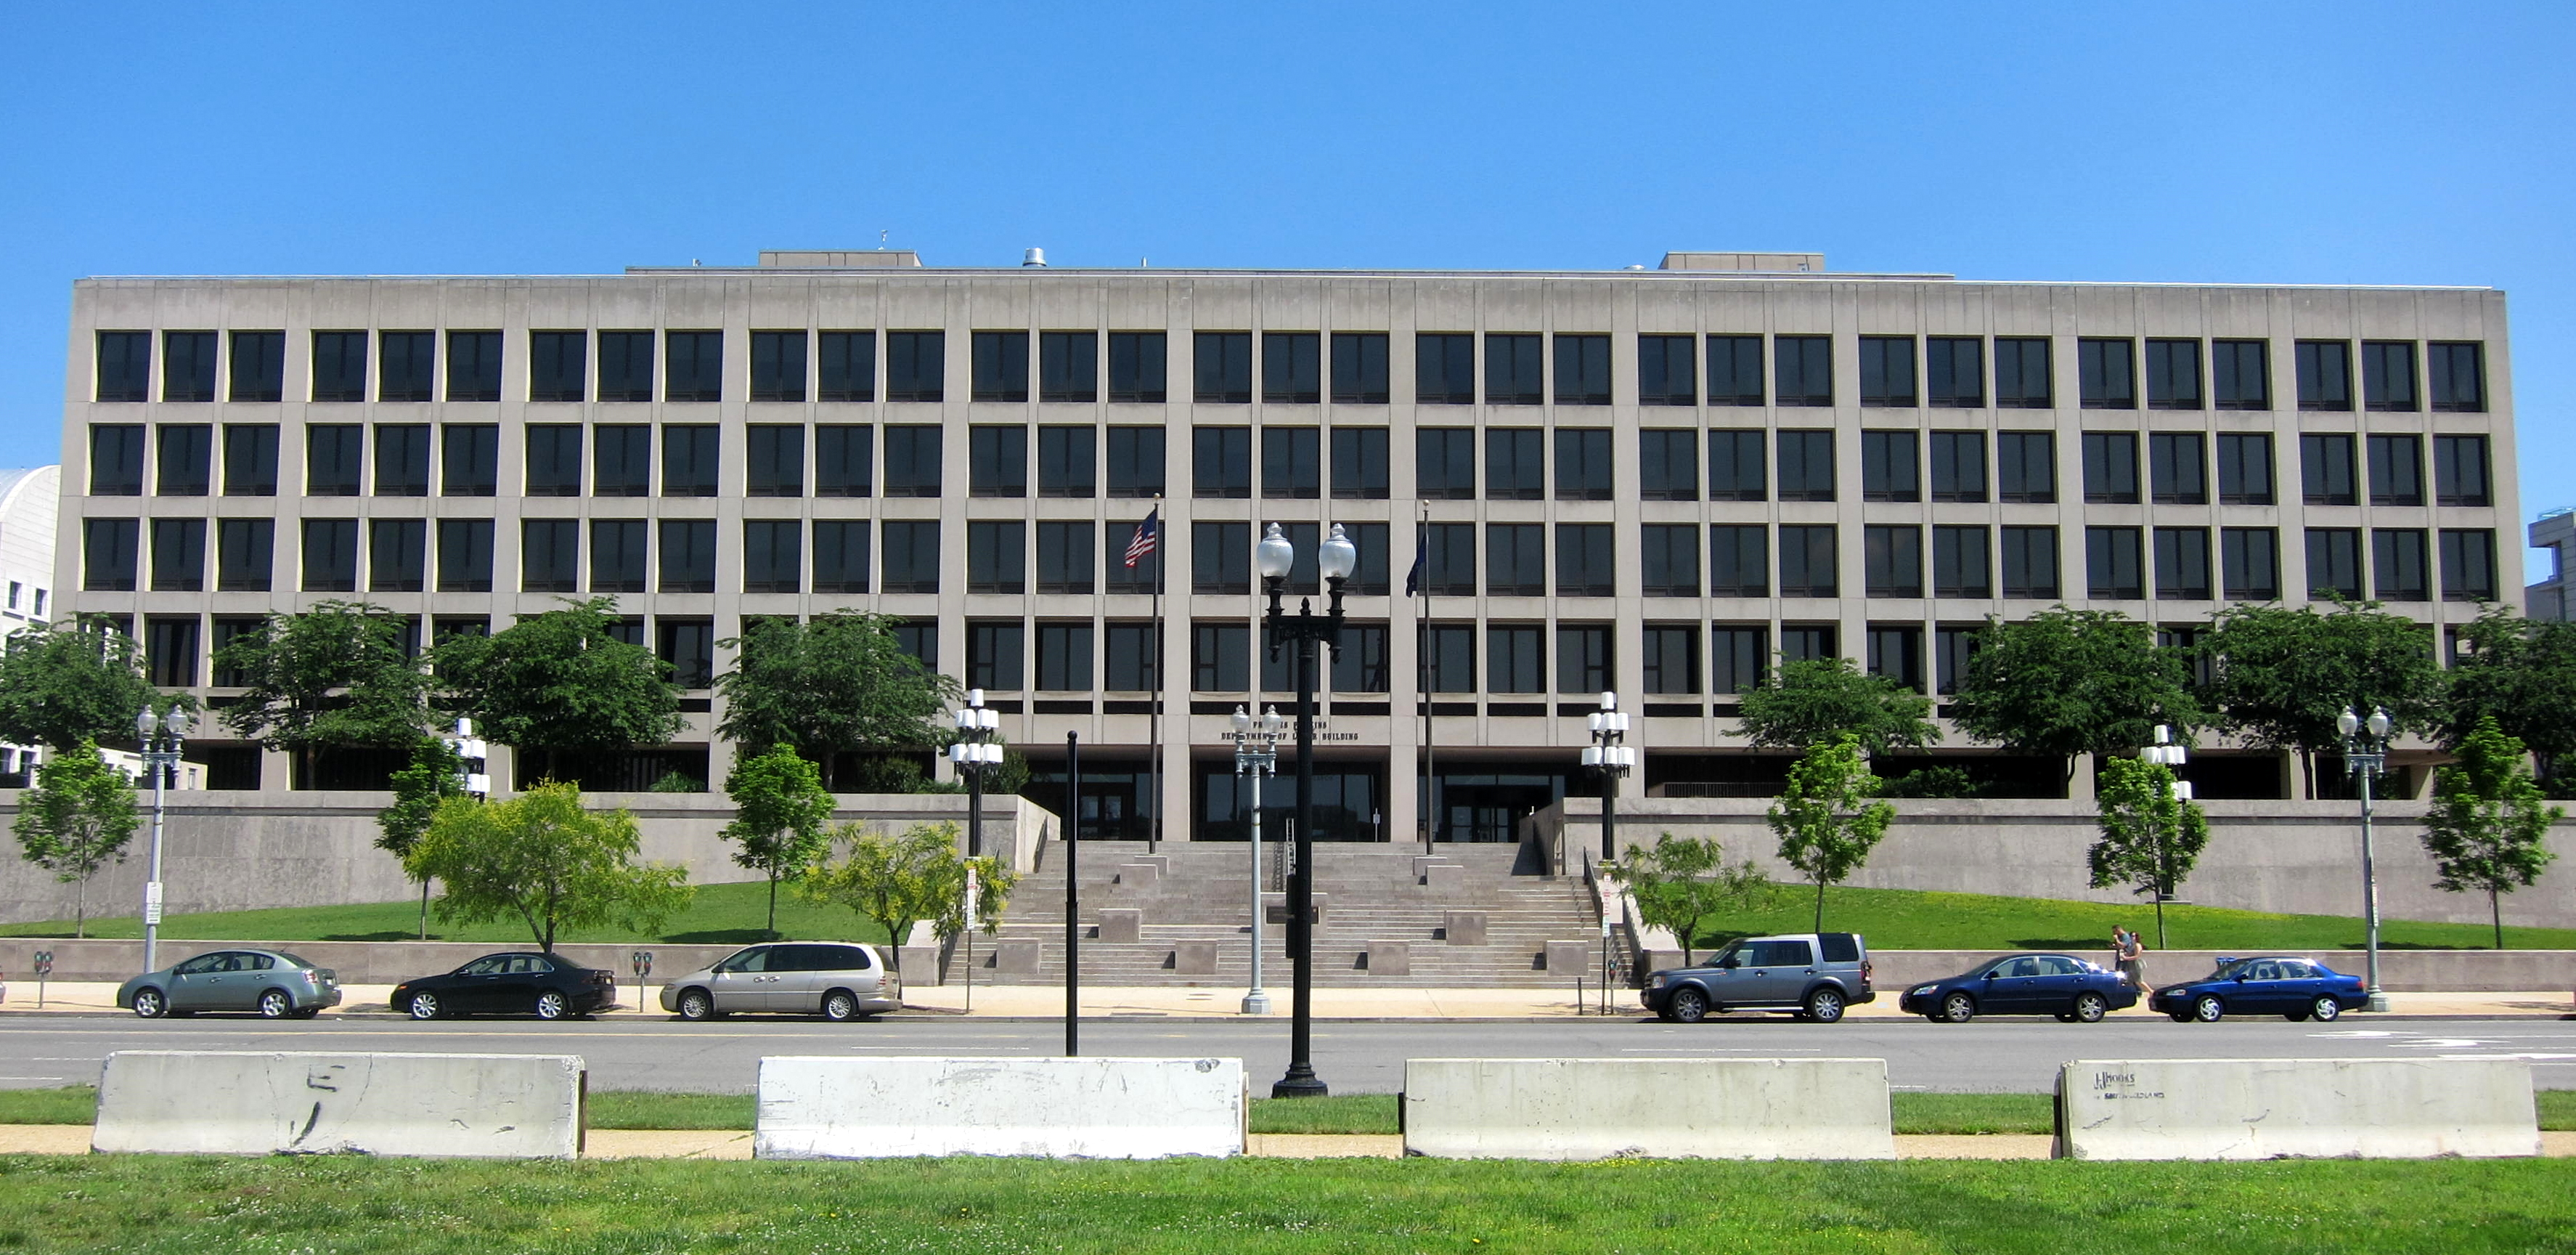 File:Frances Perkins Building.JPG - Wikimedia Commons